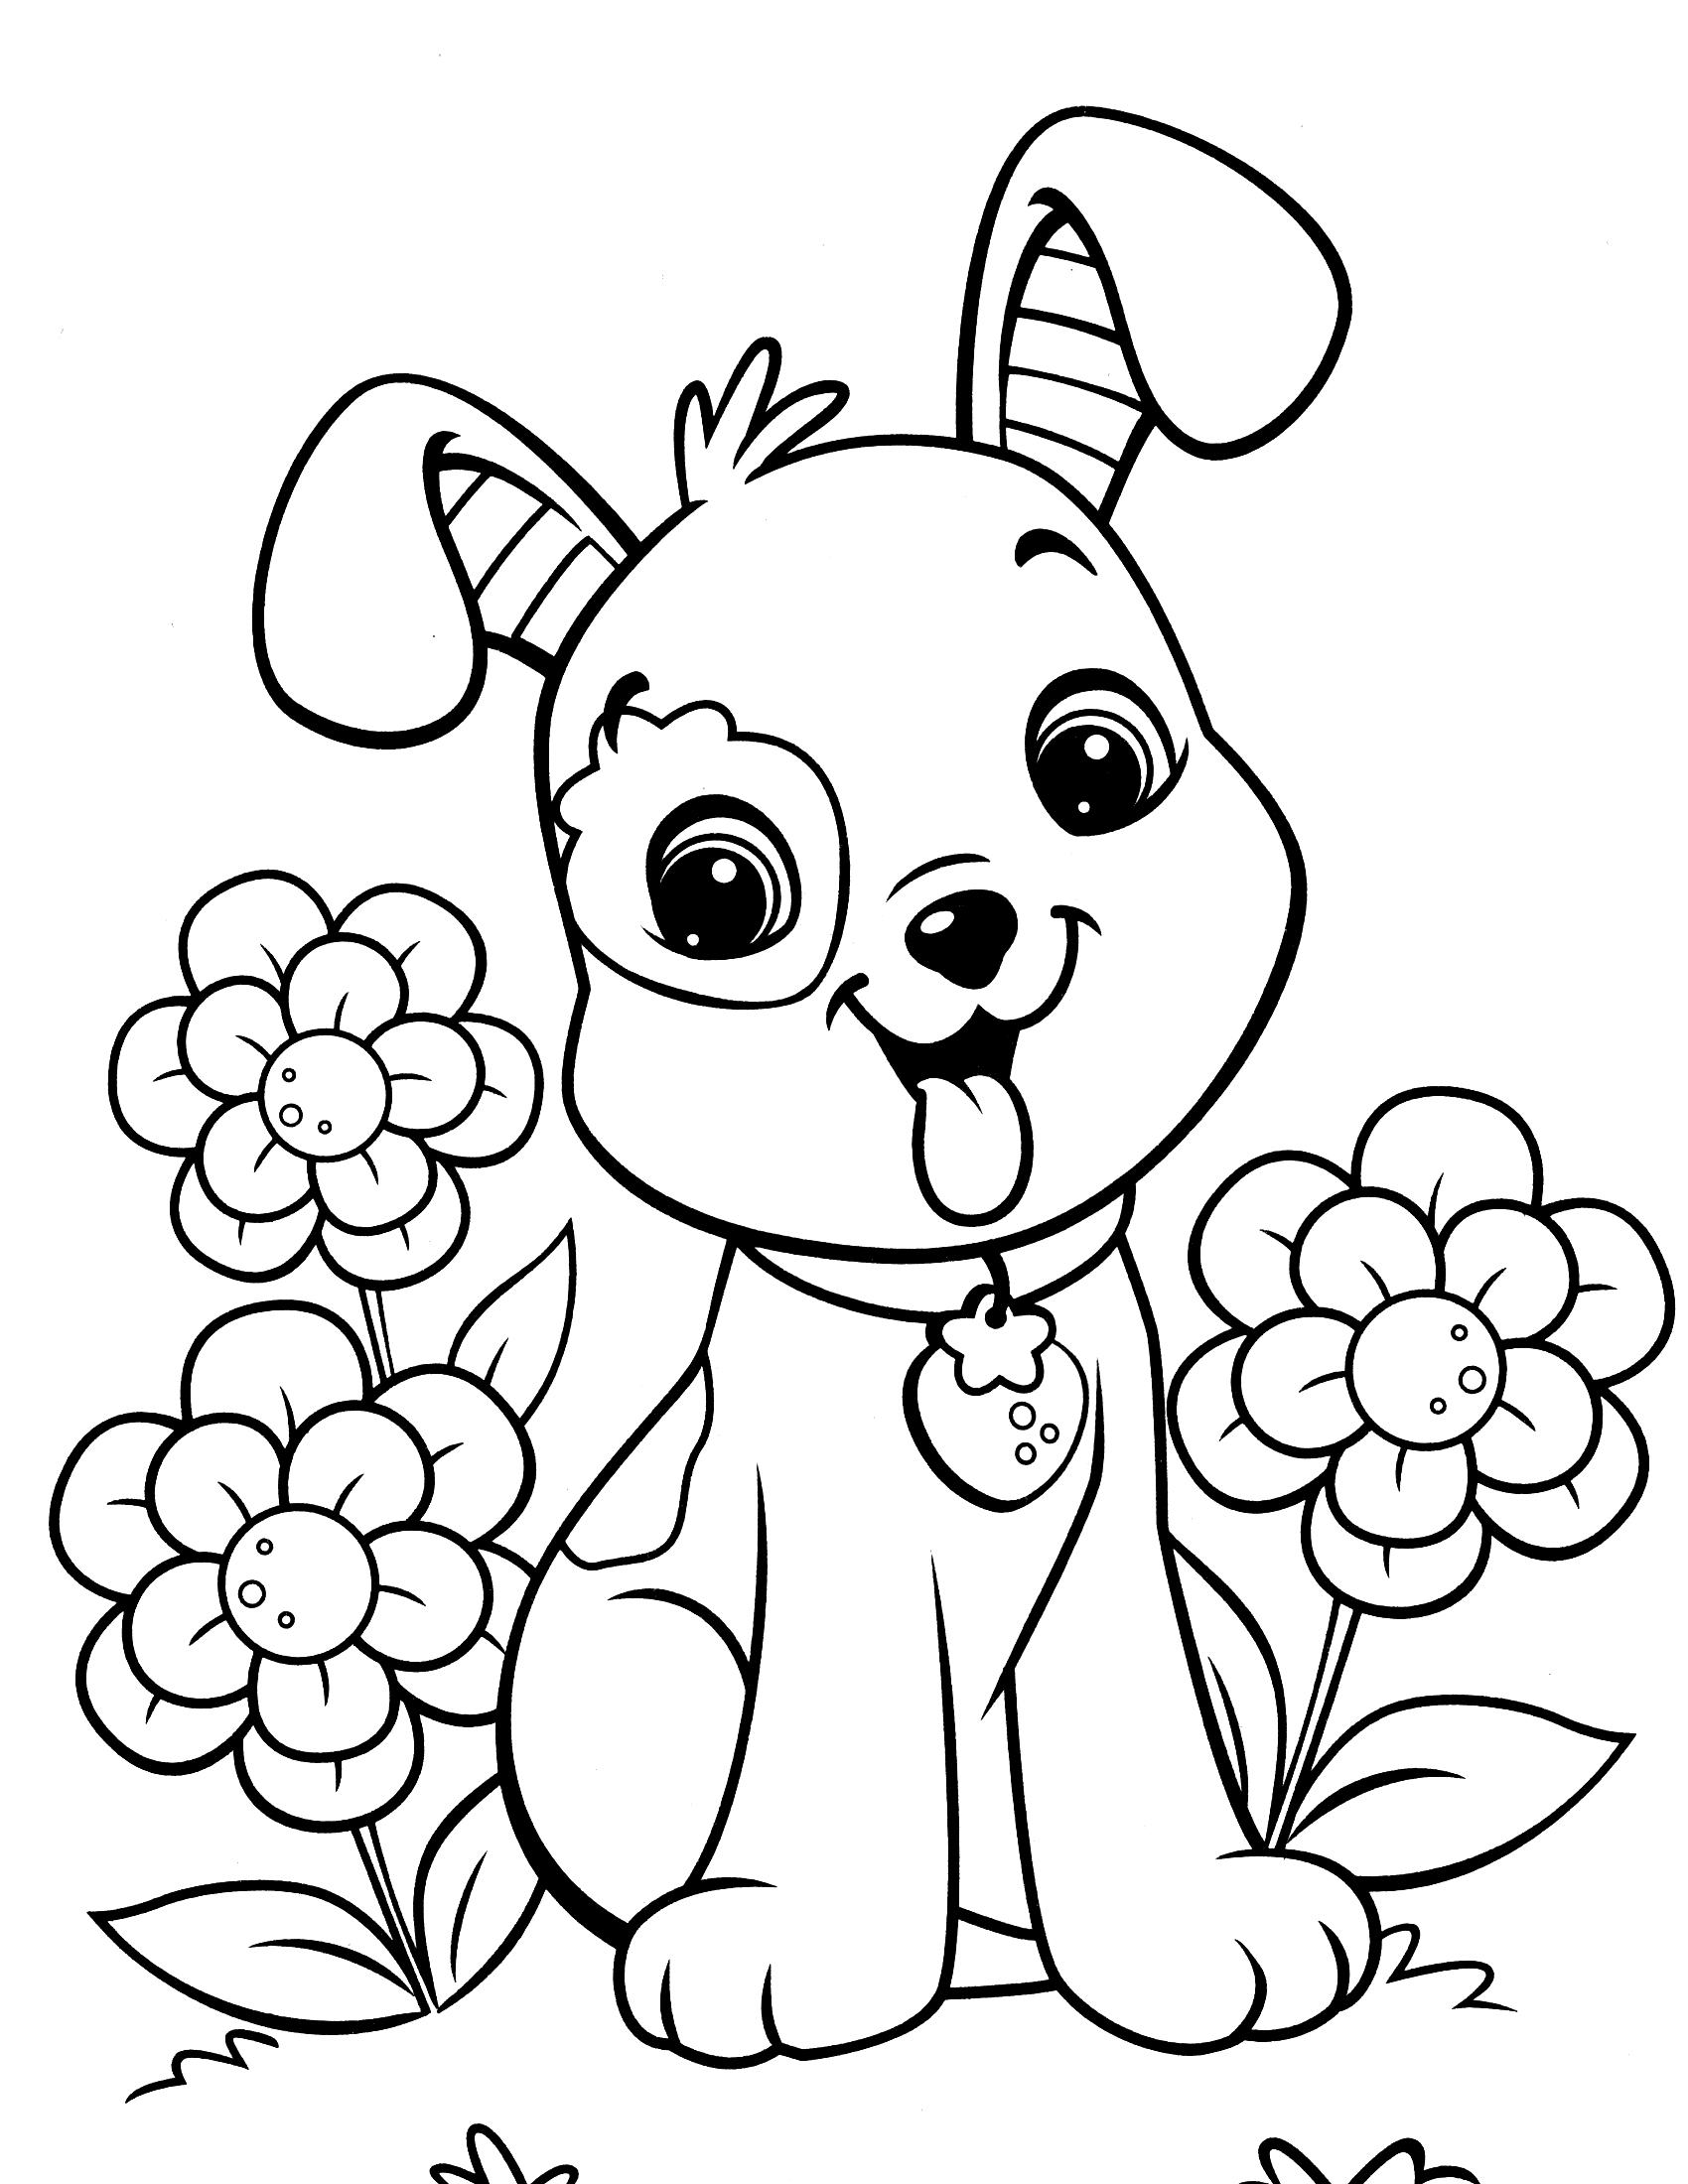 Cute dog coloring pages to download and print for free for Cute puppies coloring pages